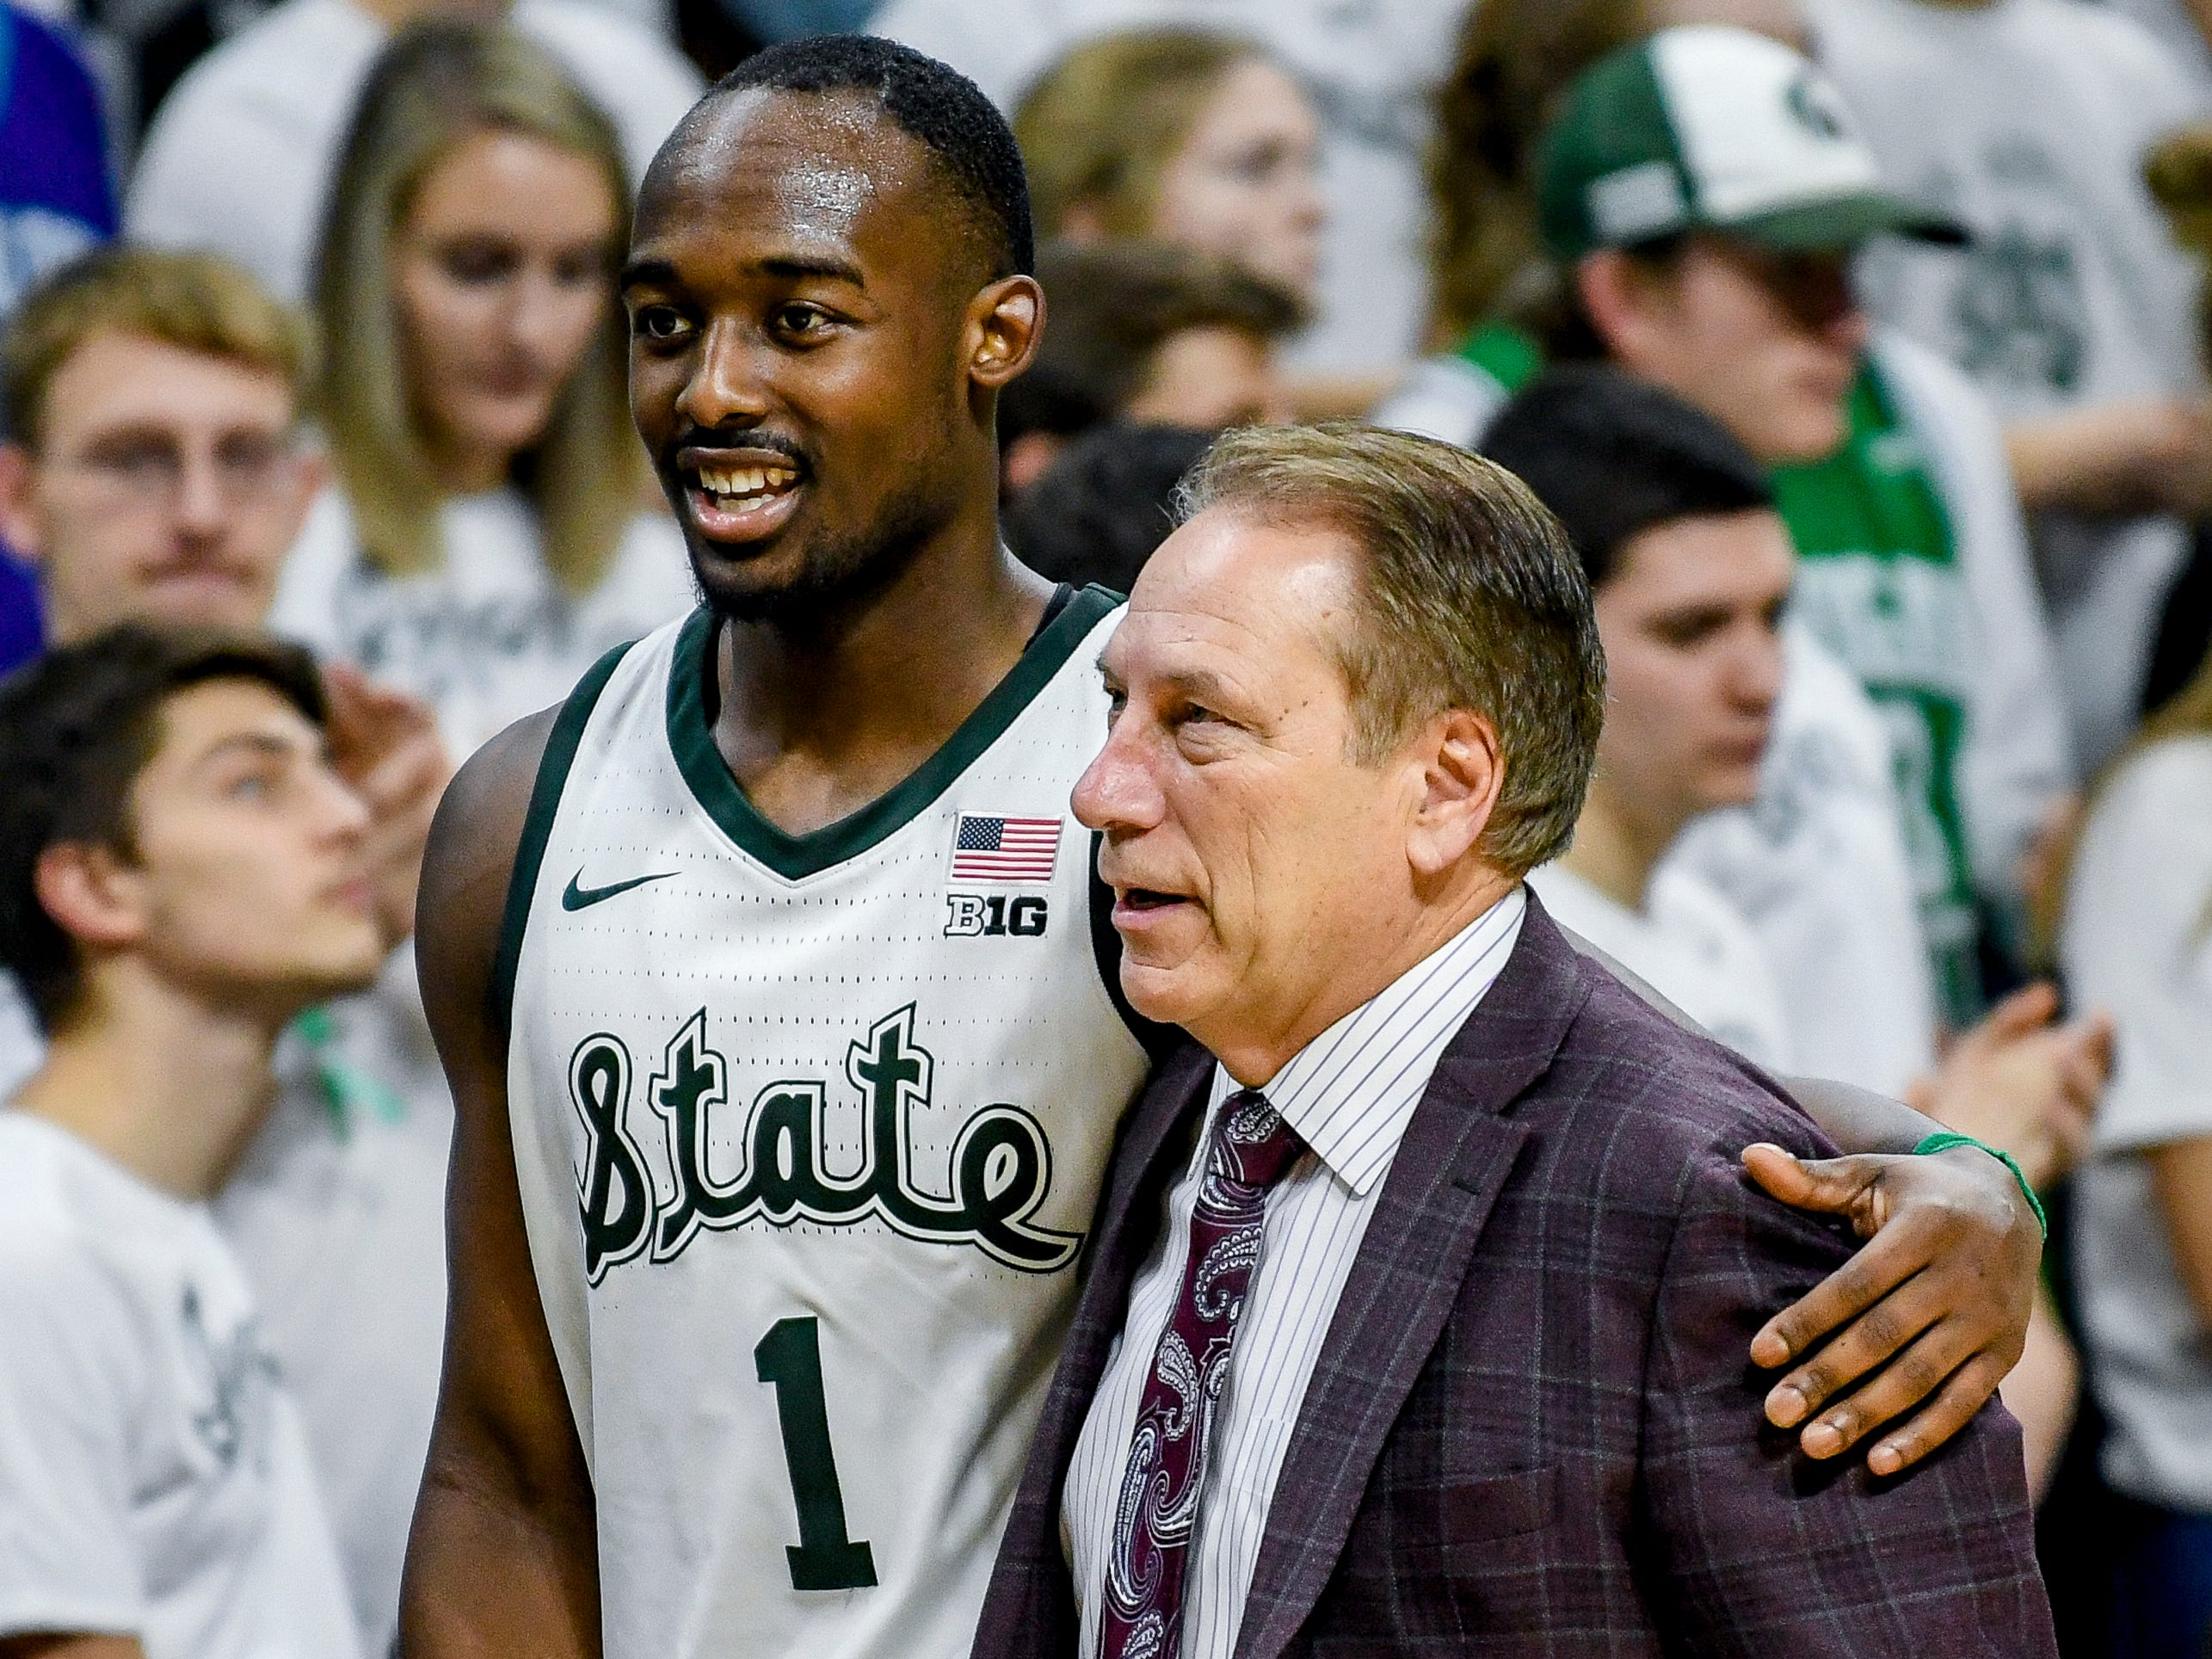 Michigan State's Joshua Langford, left, hugs head coach Tom Izzo after coming off the court during the second half on Monday, Dec. 3, 2018, at the Breslin Center in East Lansing. Michigan State beat Iowa 90-68.